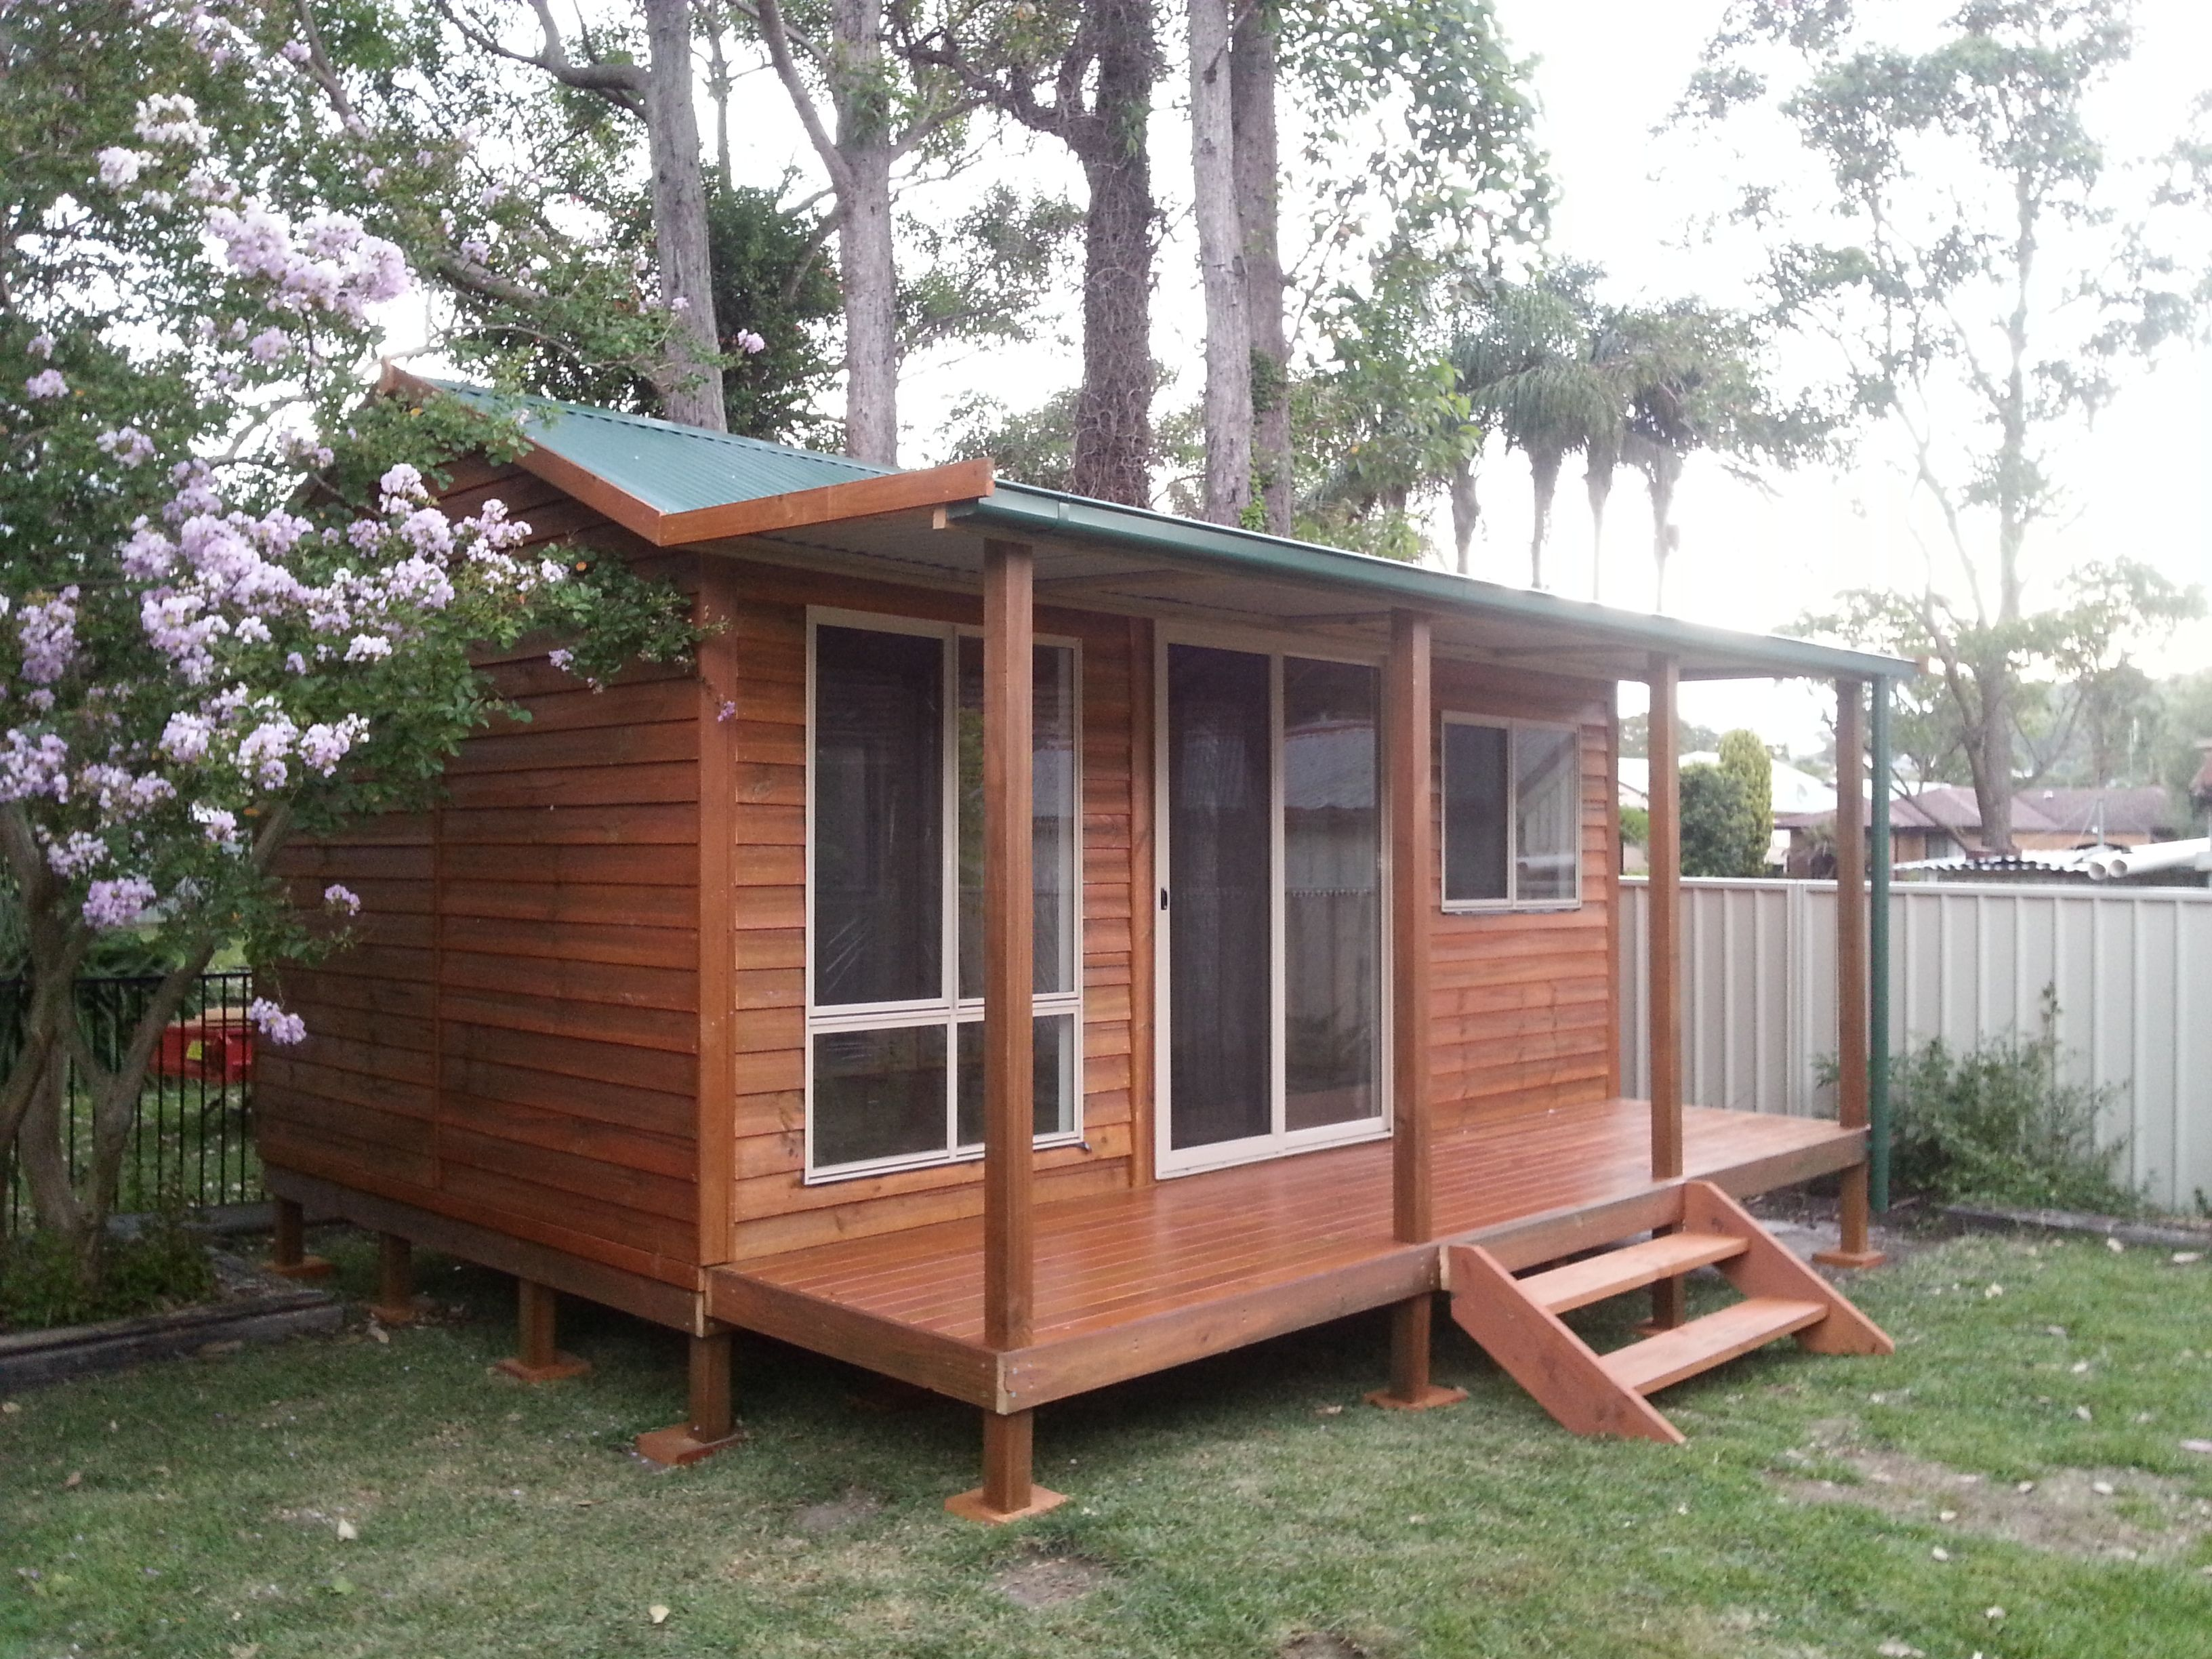 Man Cave Sheds Garages Nsw : An art studio granny flat man cave she shed or teenage retreat